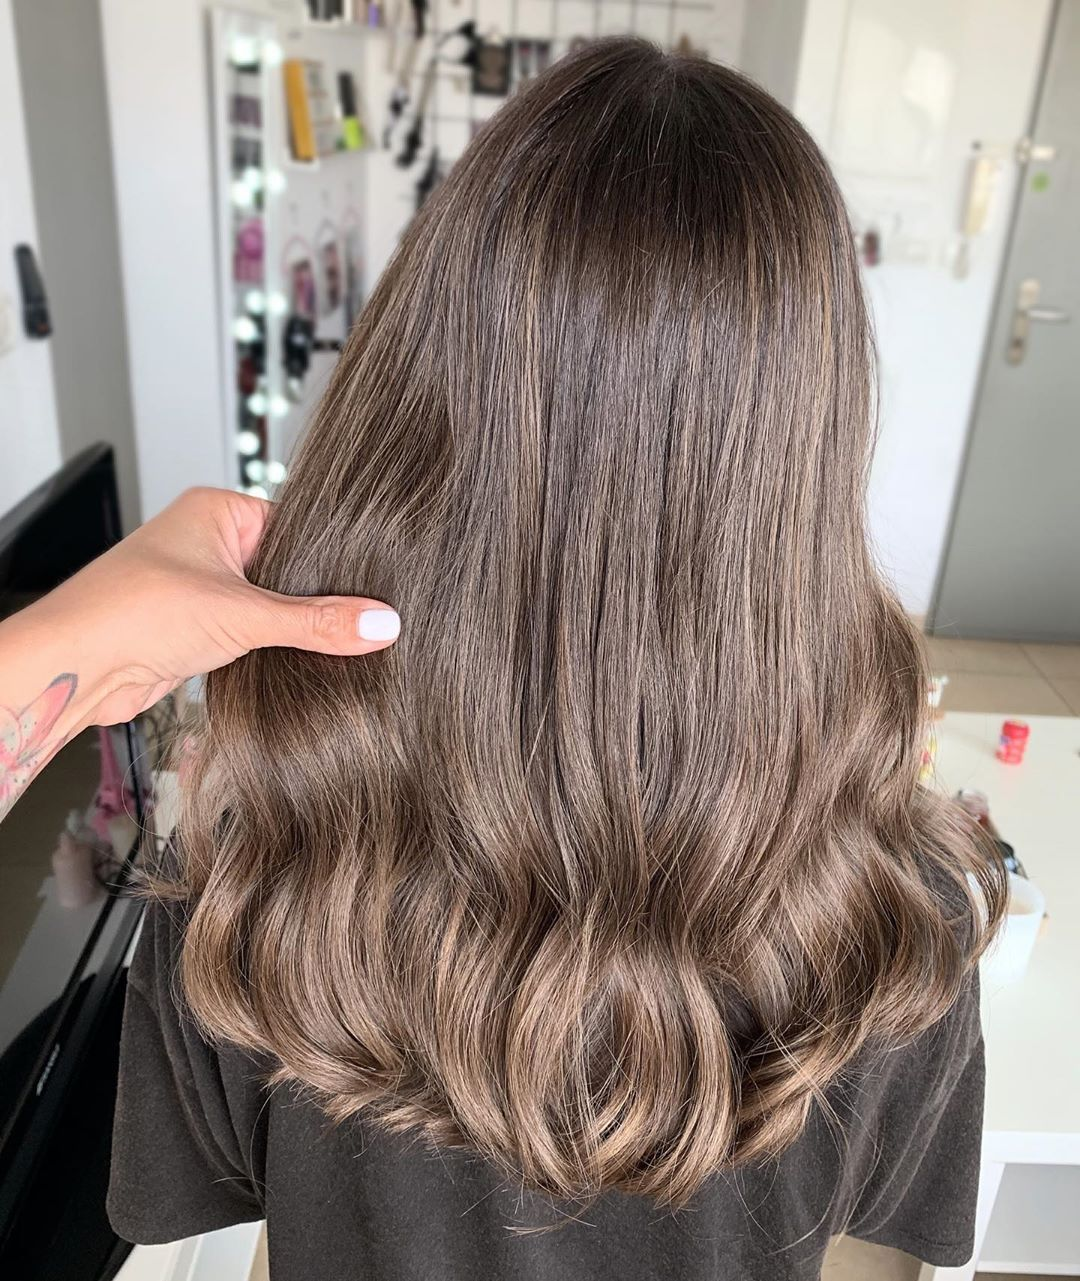 Tom Hair Color For Morena Skin Hair Color For Morena Hair Color Rose Gold